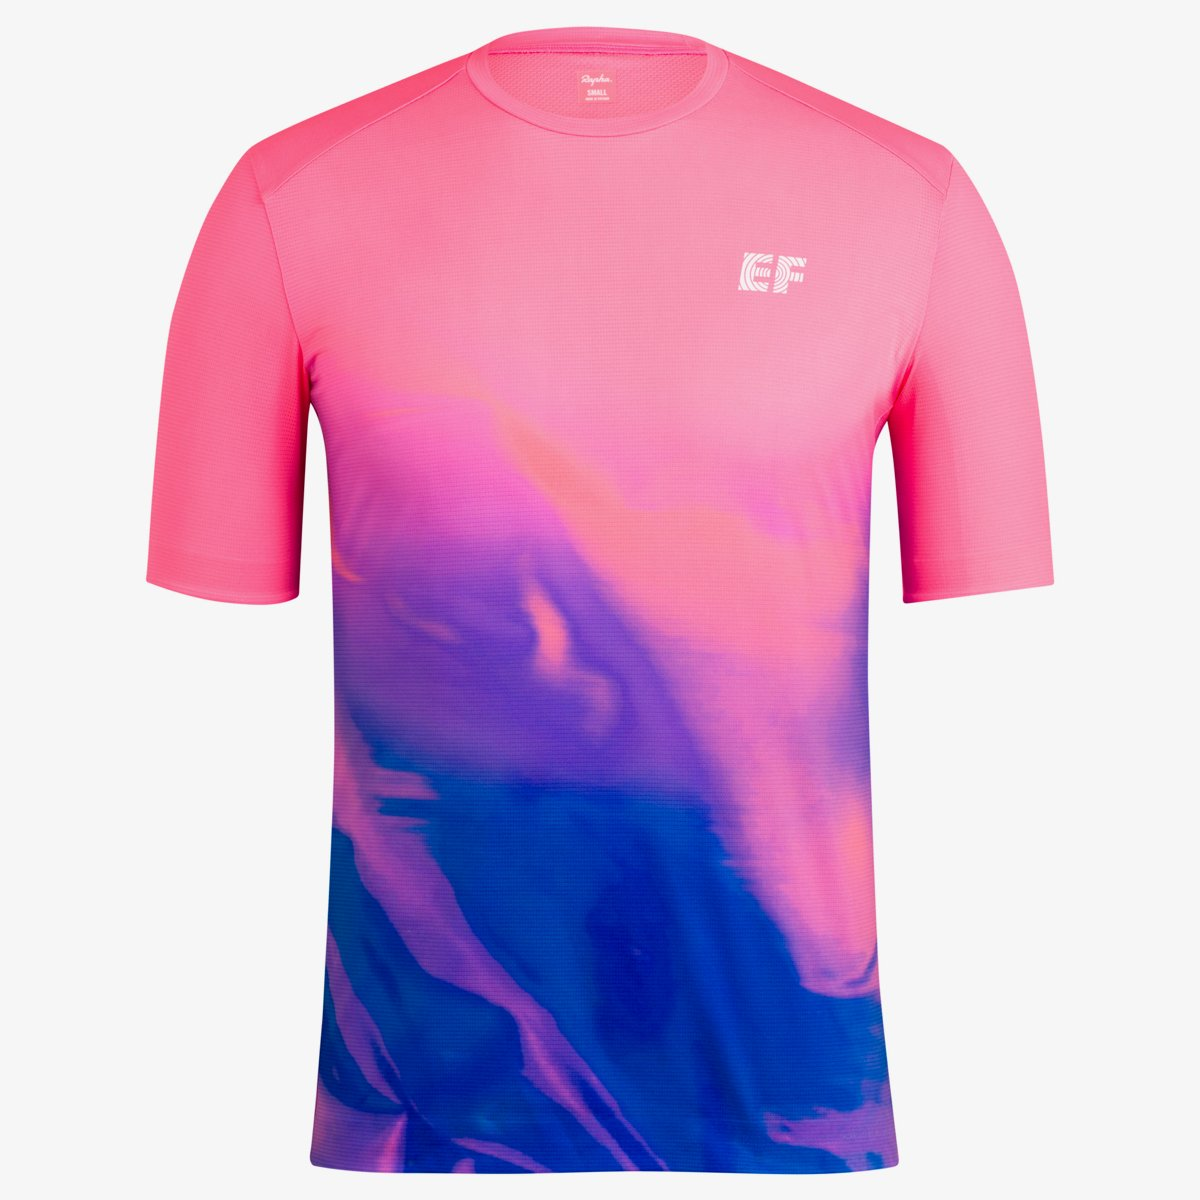 Rapha EF EDUCATION FIRST TECHNICAL T-SHIRT